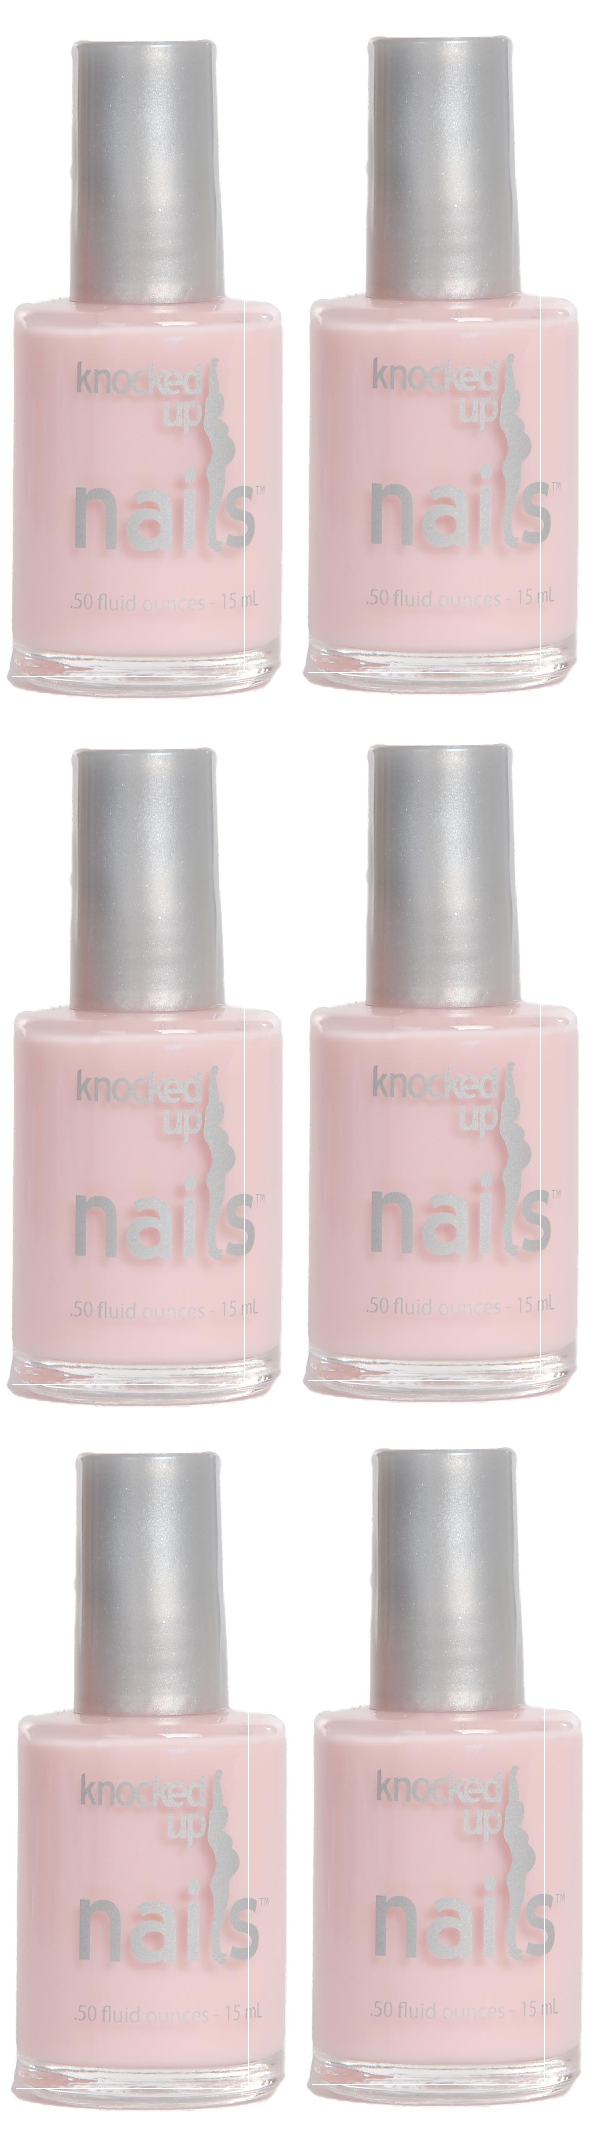 Knocked Up Nails, pregnancy safe nail polish, perfect for a baby ...